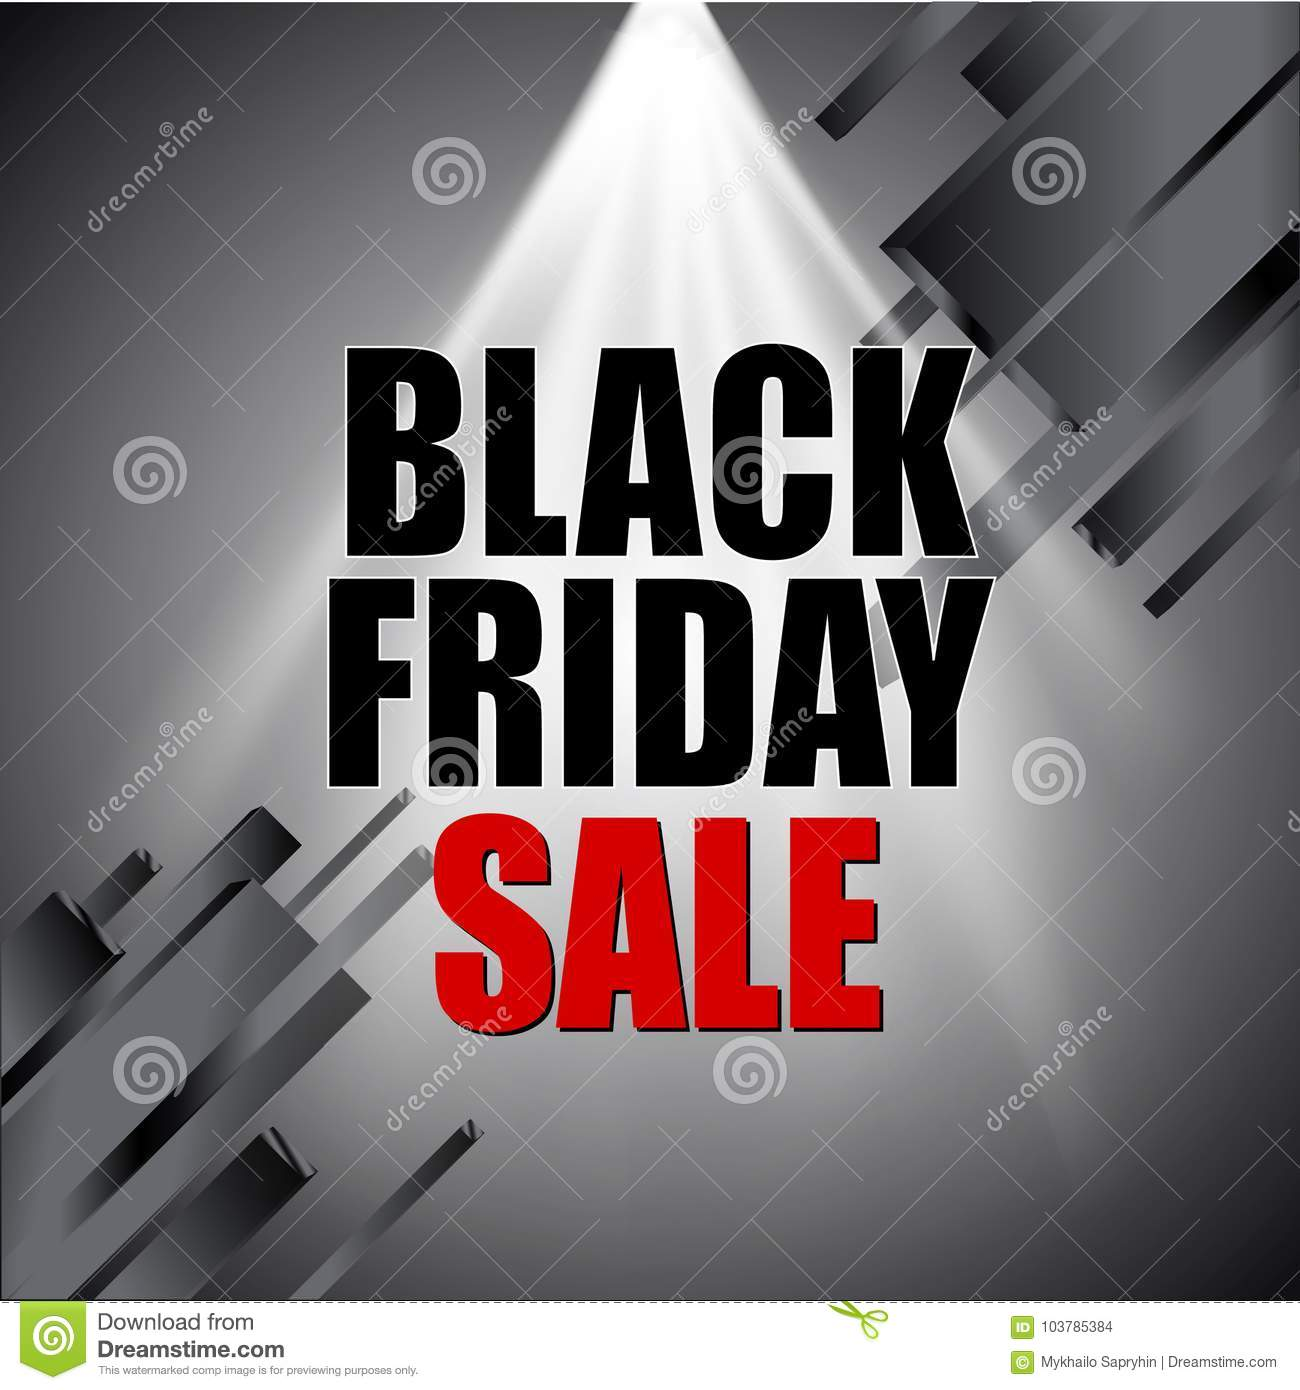 Black friday sale with light effect and abstract elements on silver background. Vector illustration.